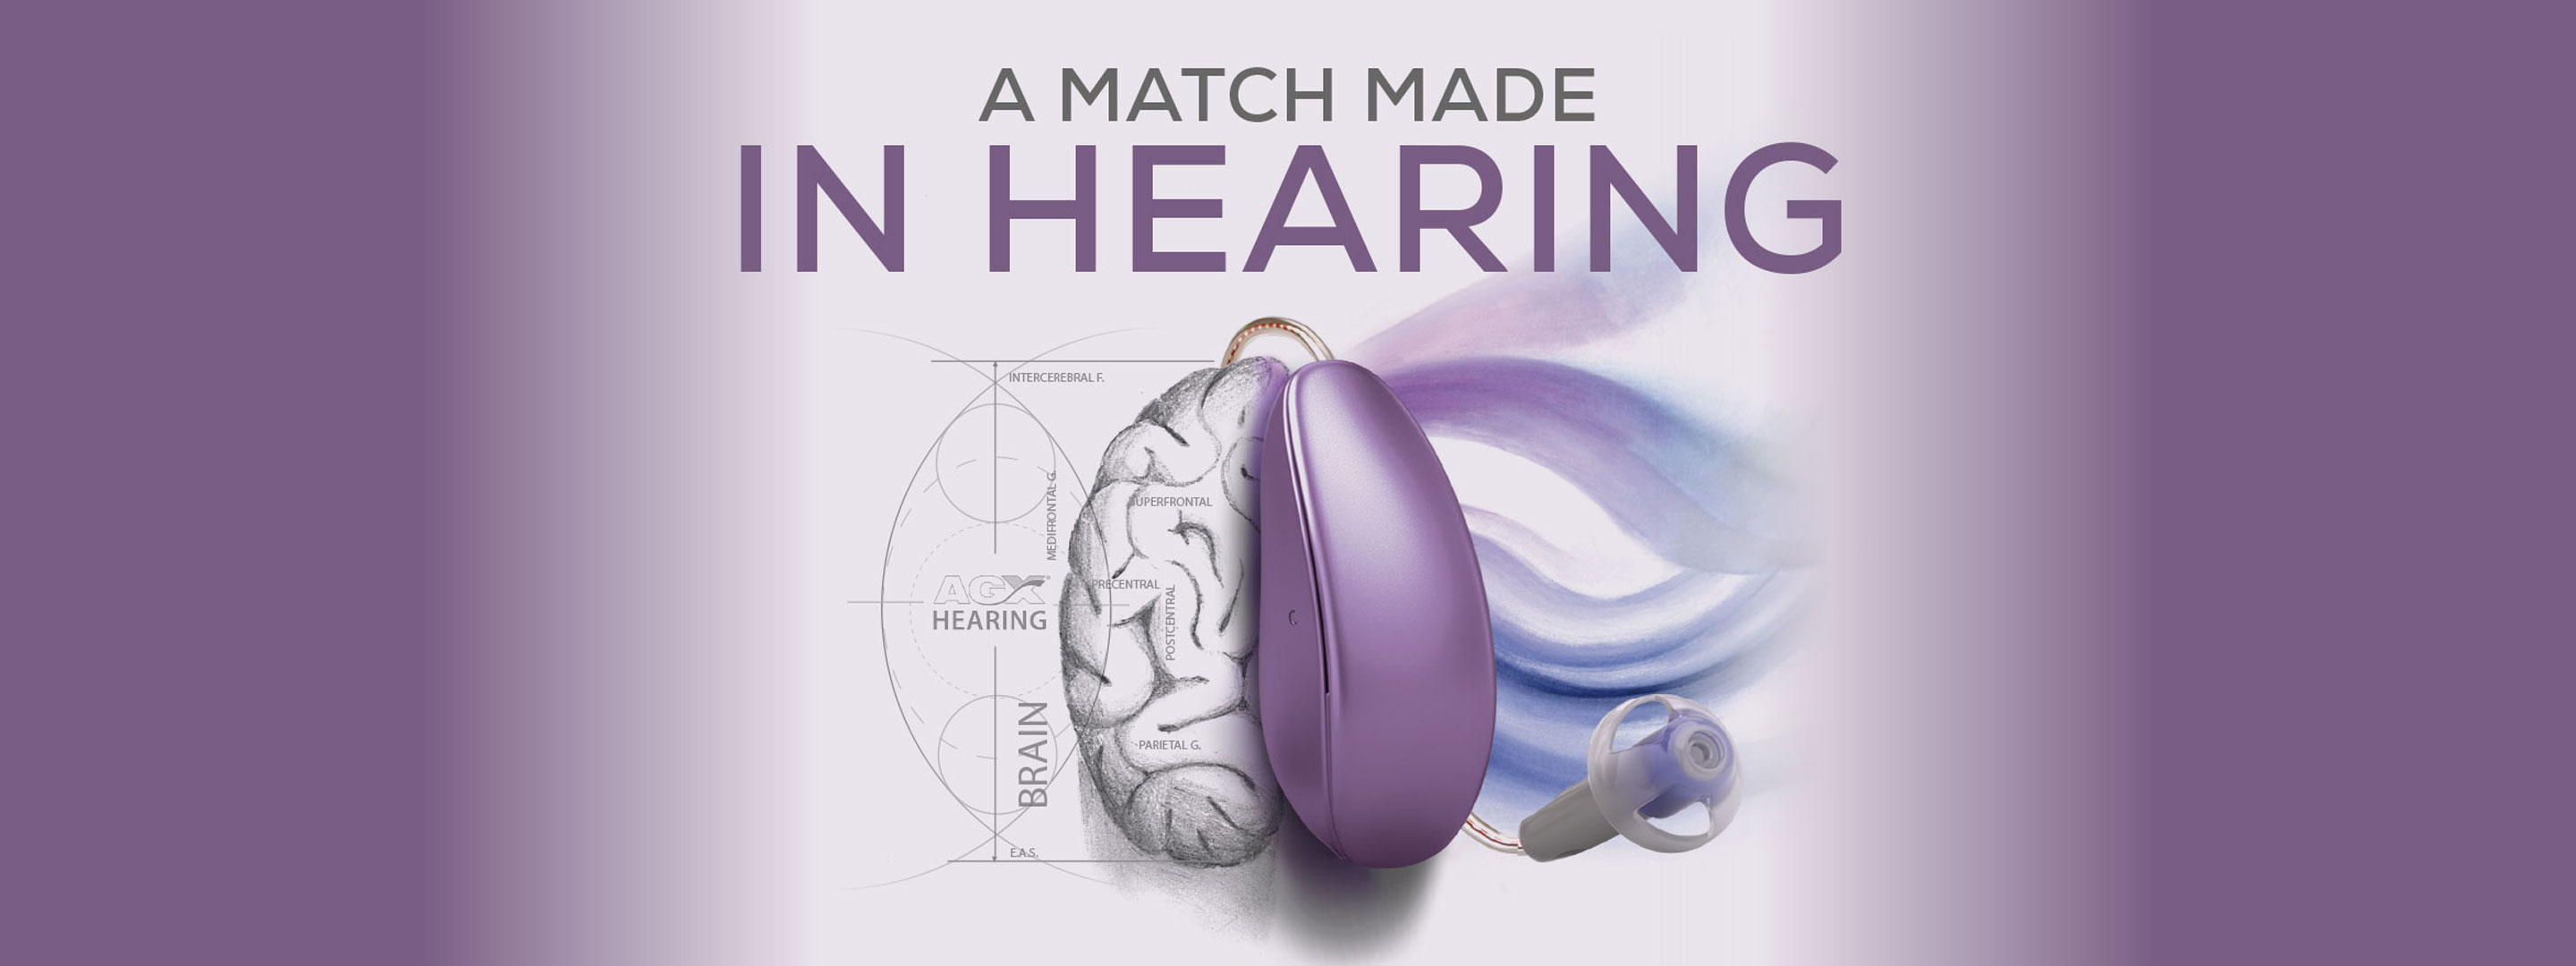 Hear Soft Speech More Naturally With AGX® Technology